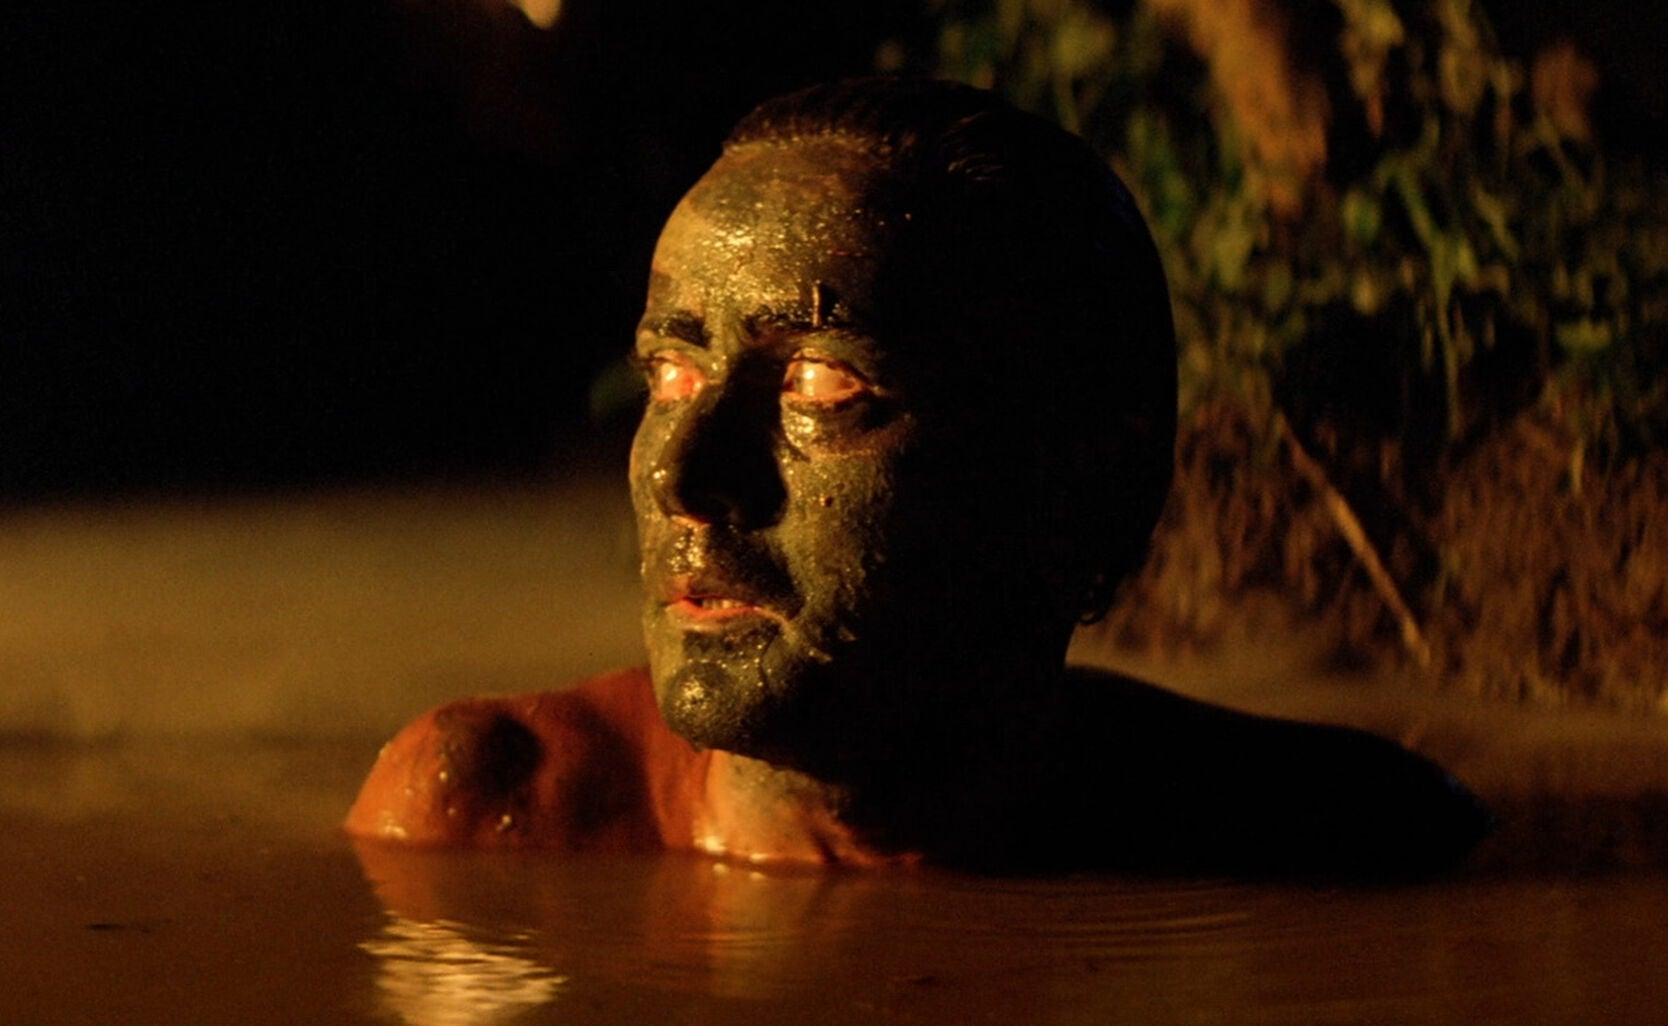 A scene from the film Apocalypse Now